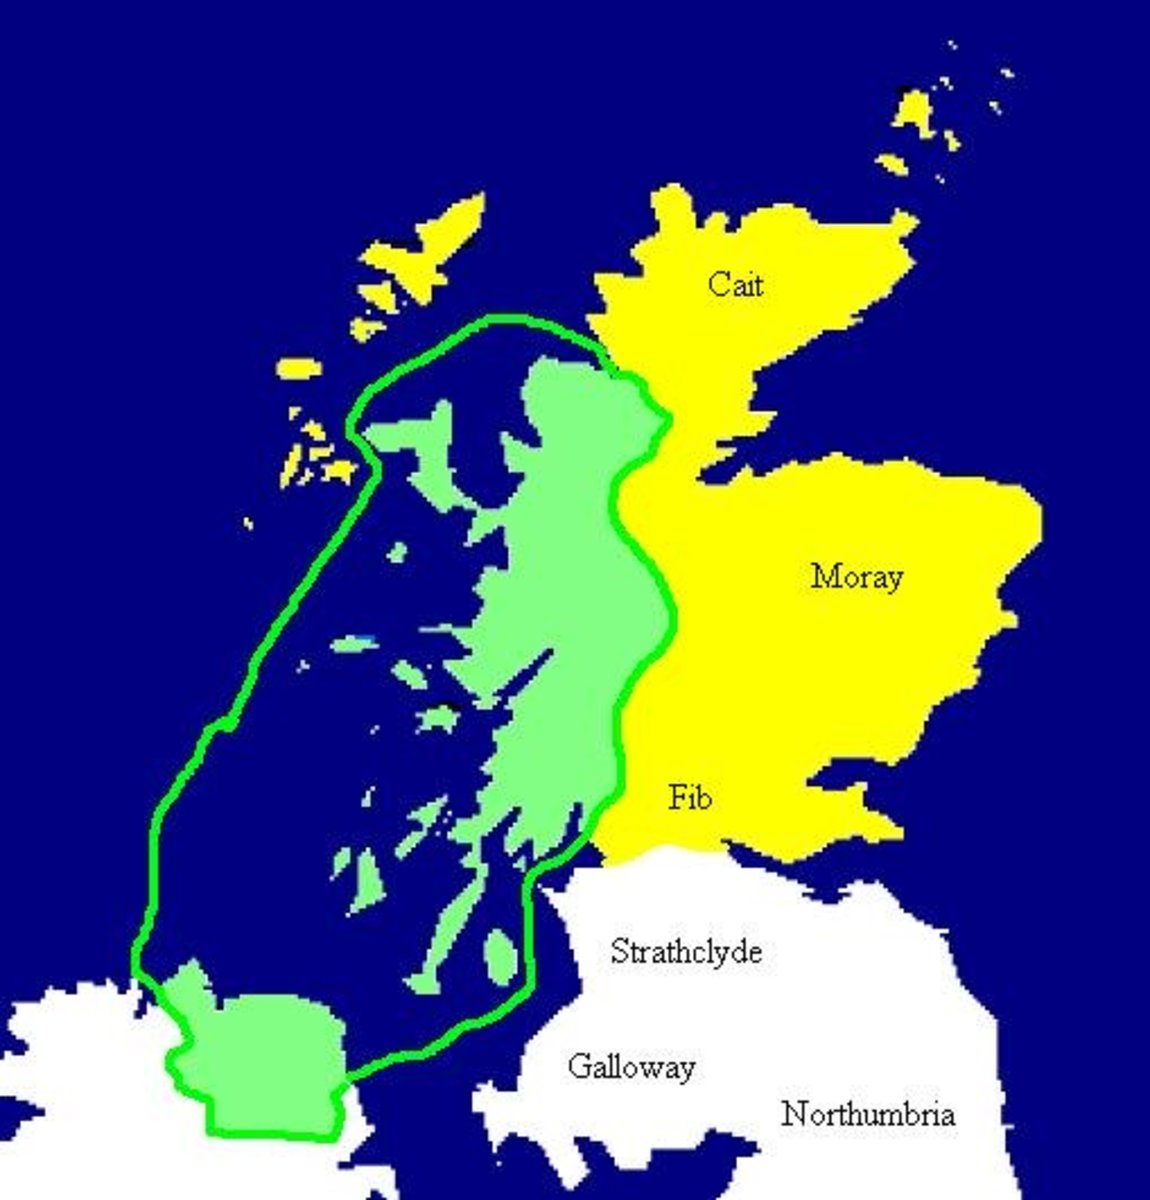 The Kingdom of Dalriada c 500 AD is marked in green. Pictish areas marked yellow.